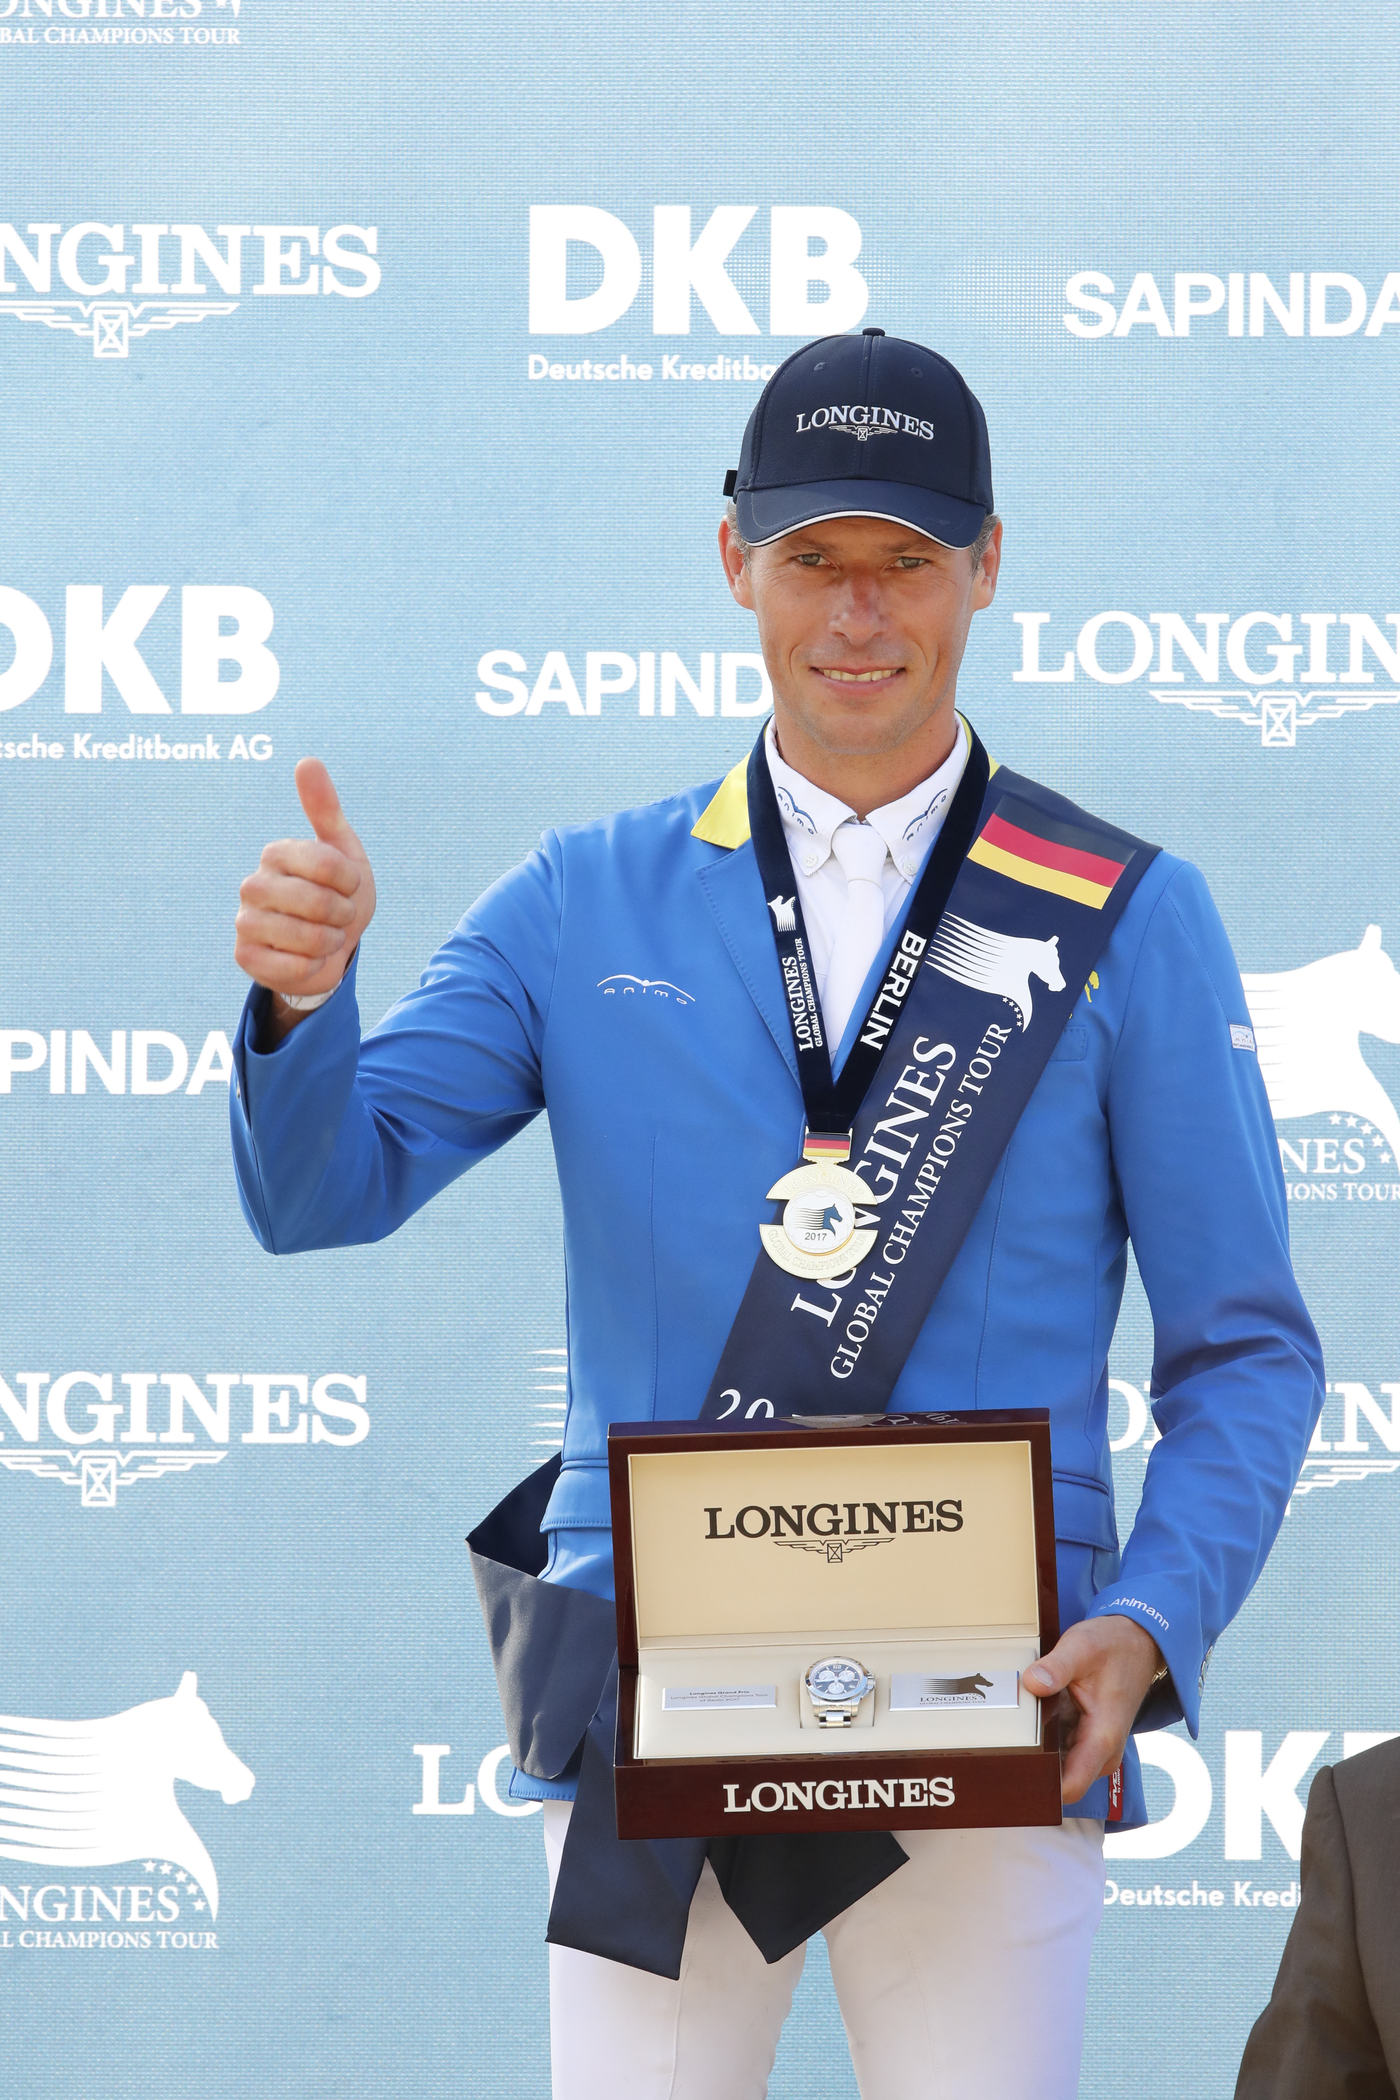 Longines Flat Racing Event: Berlin joined the Longines Global Champions Tour 8